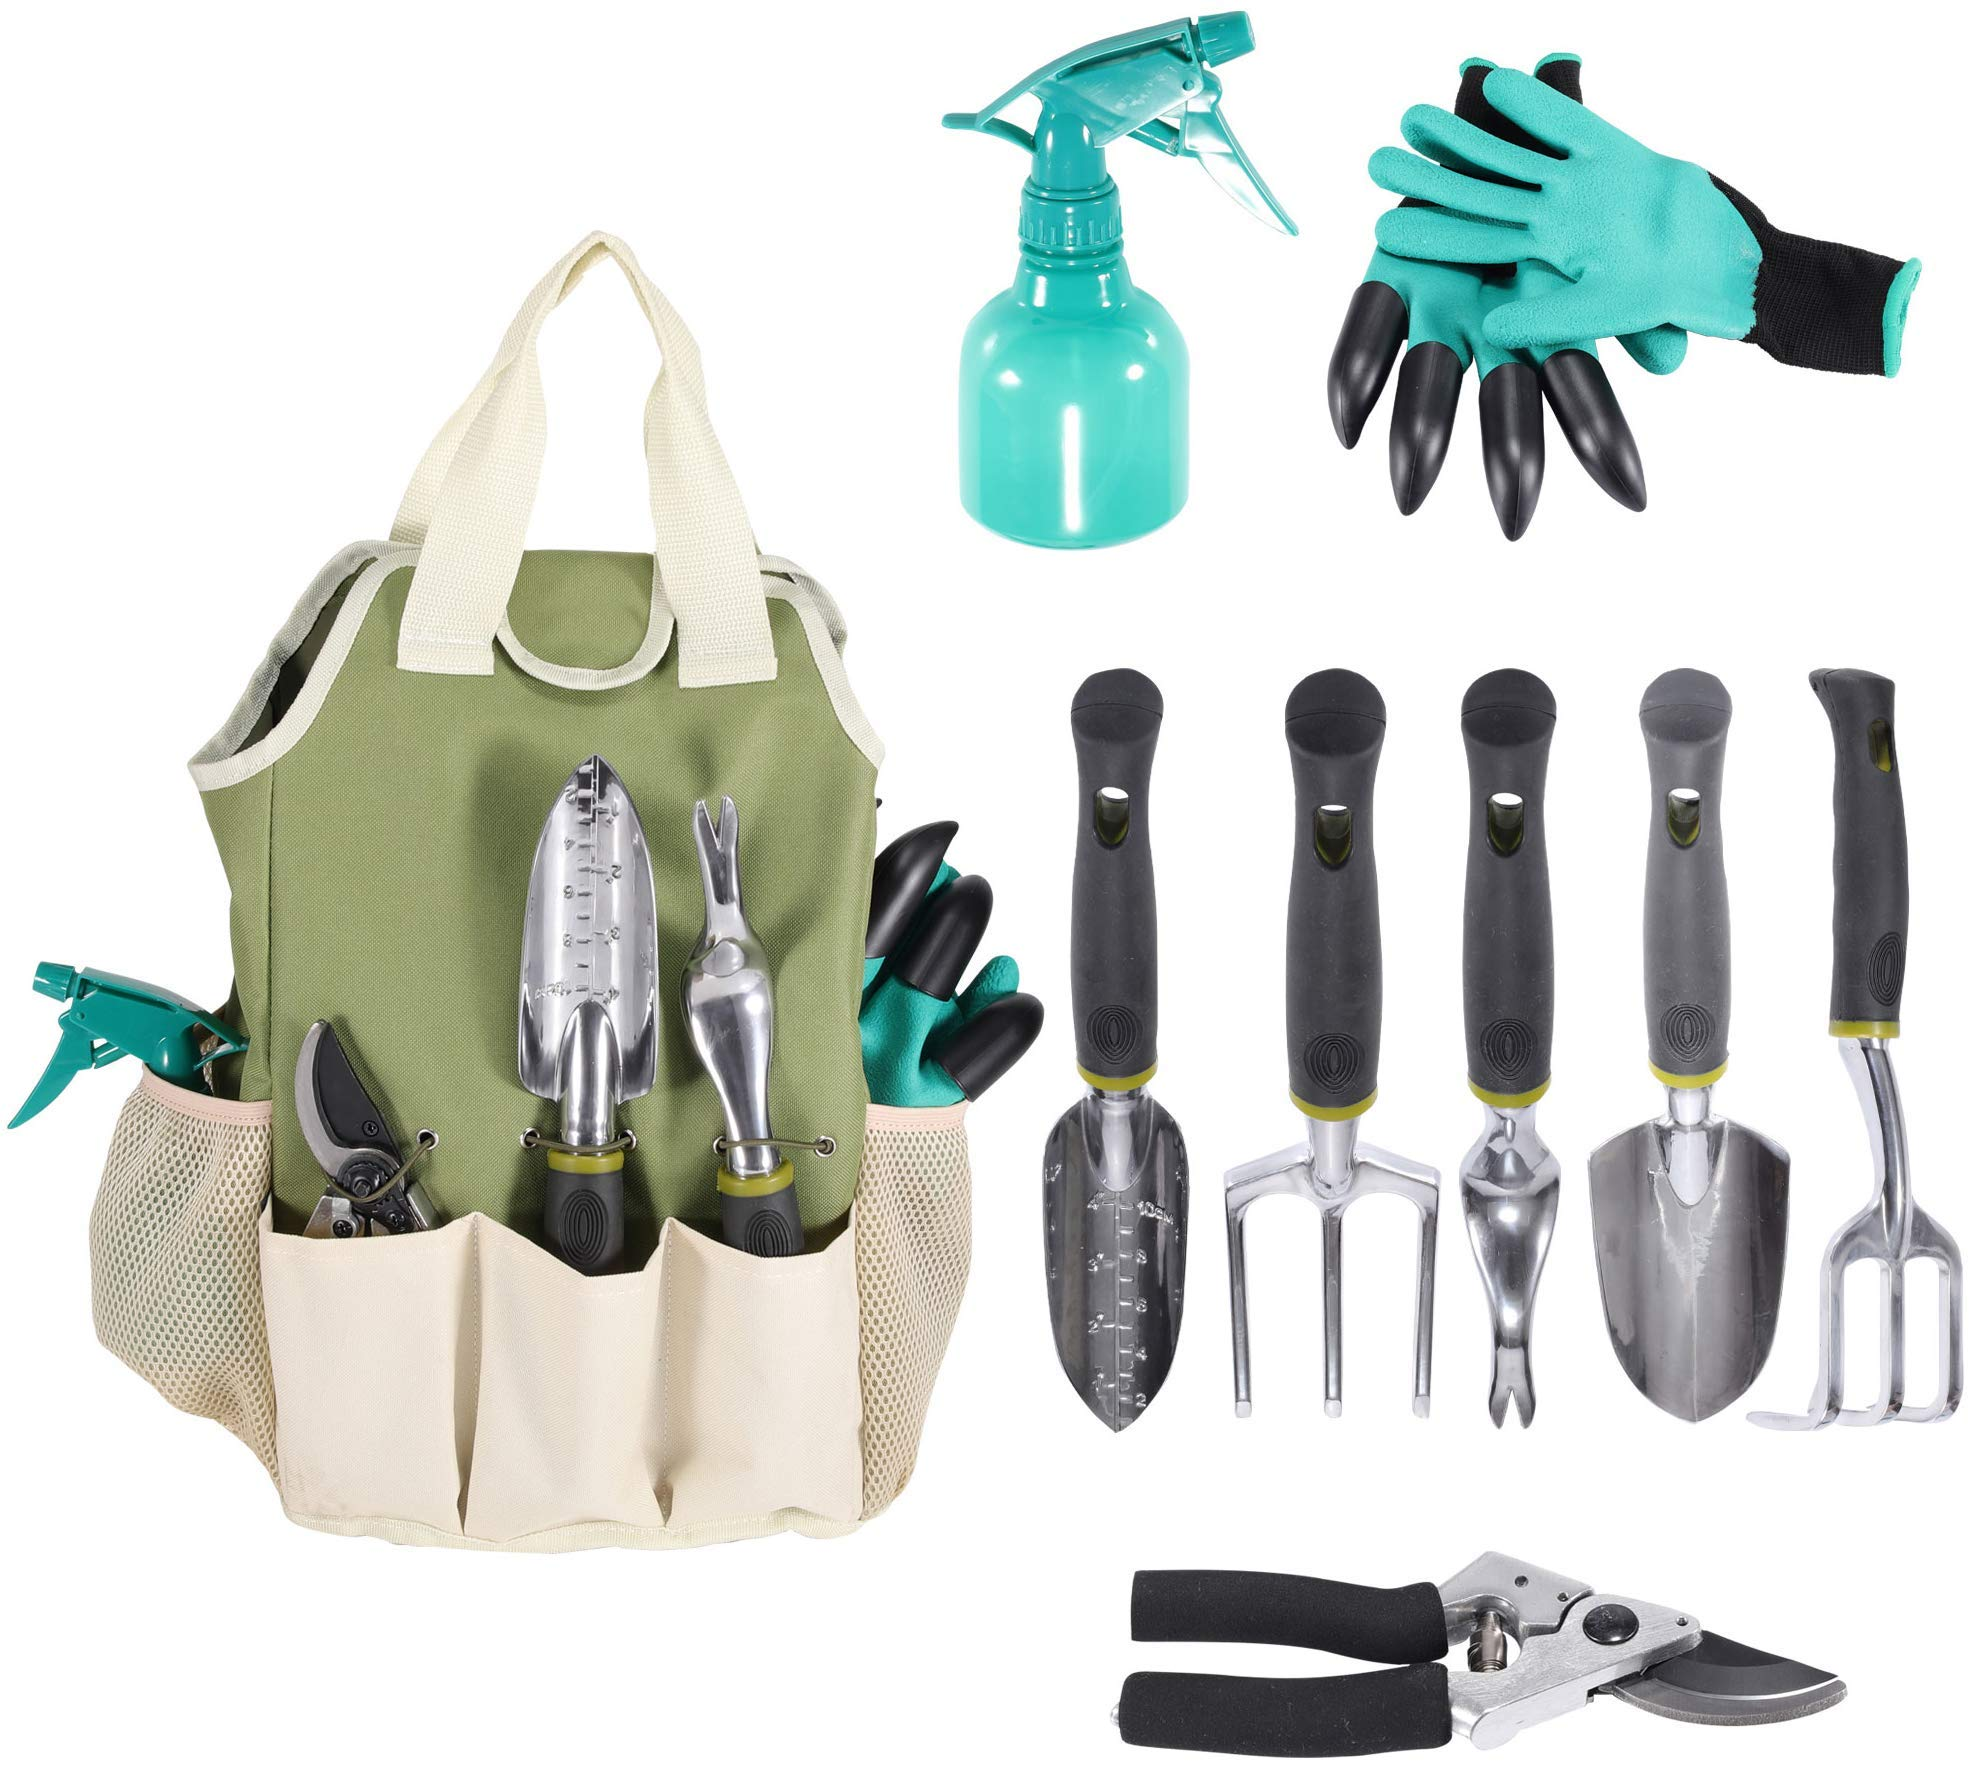 Gardening Tools Set | Garden Tool Organizer Tote | Gardening Gloves Included Great Garden Tools for Woman and Men | 9 Piece Garden Accessories Tool Organizer Kit | Gardening Gifts | Gardeners Supply